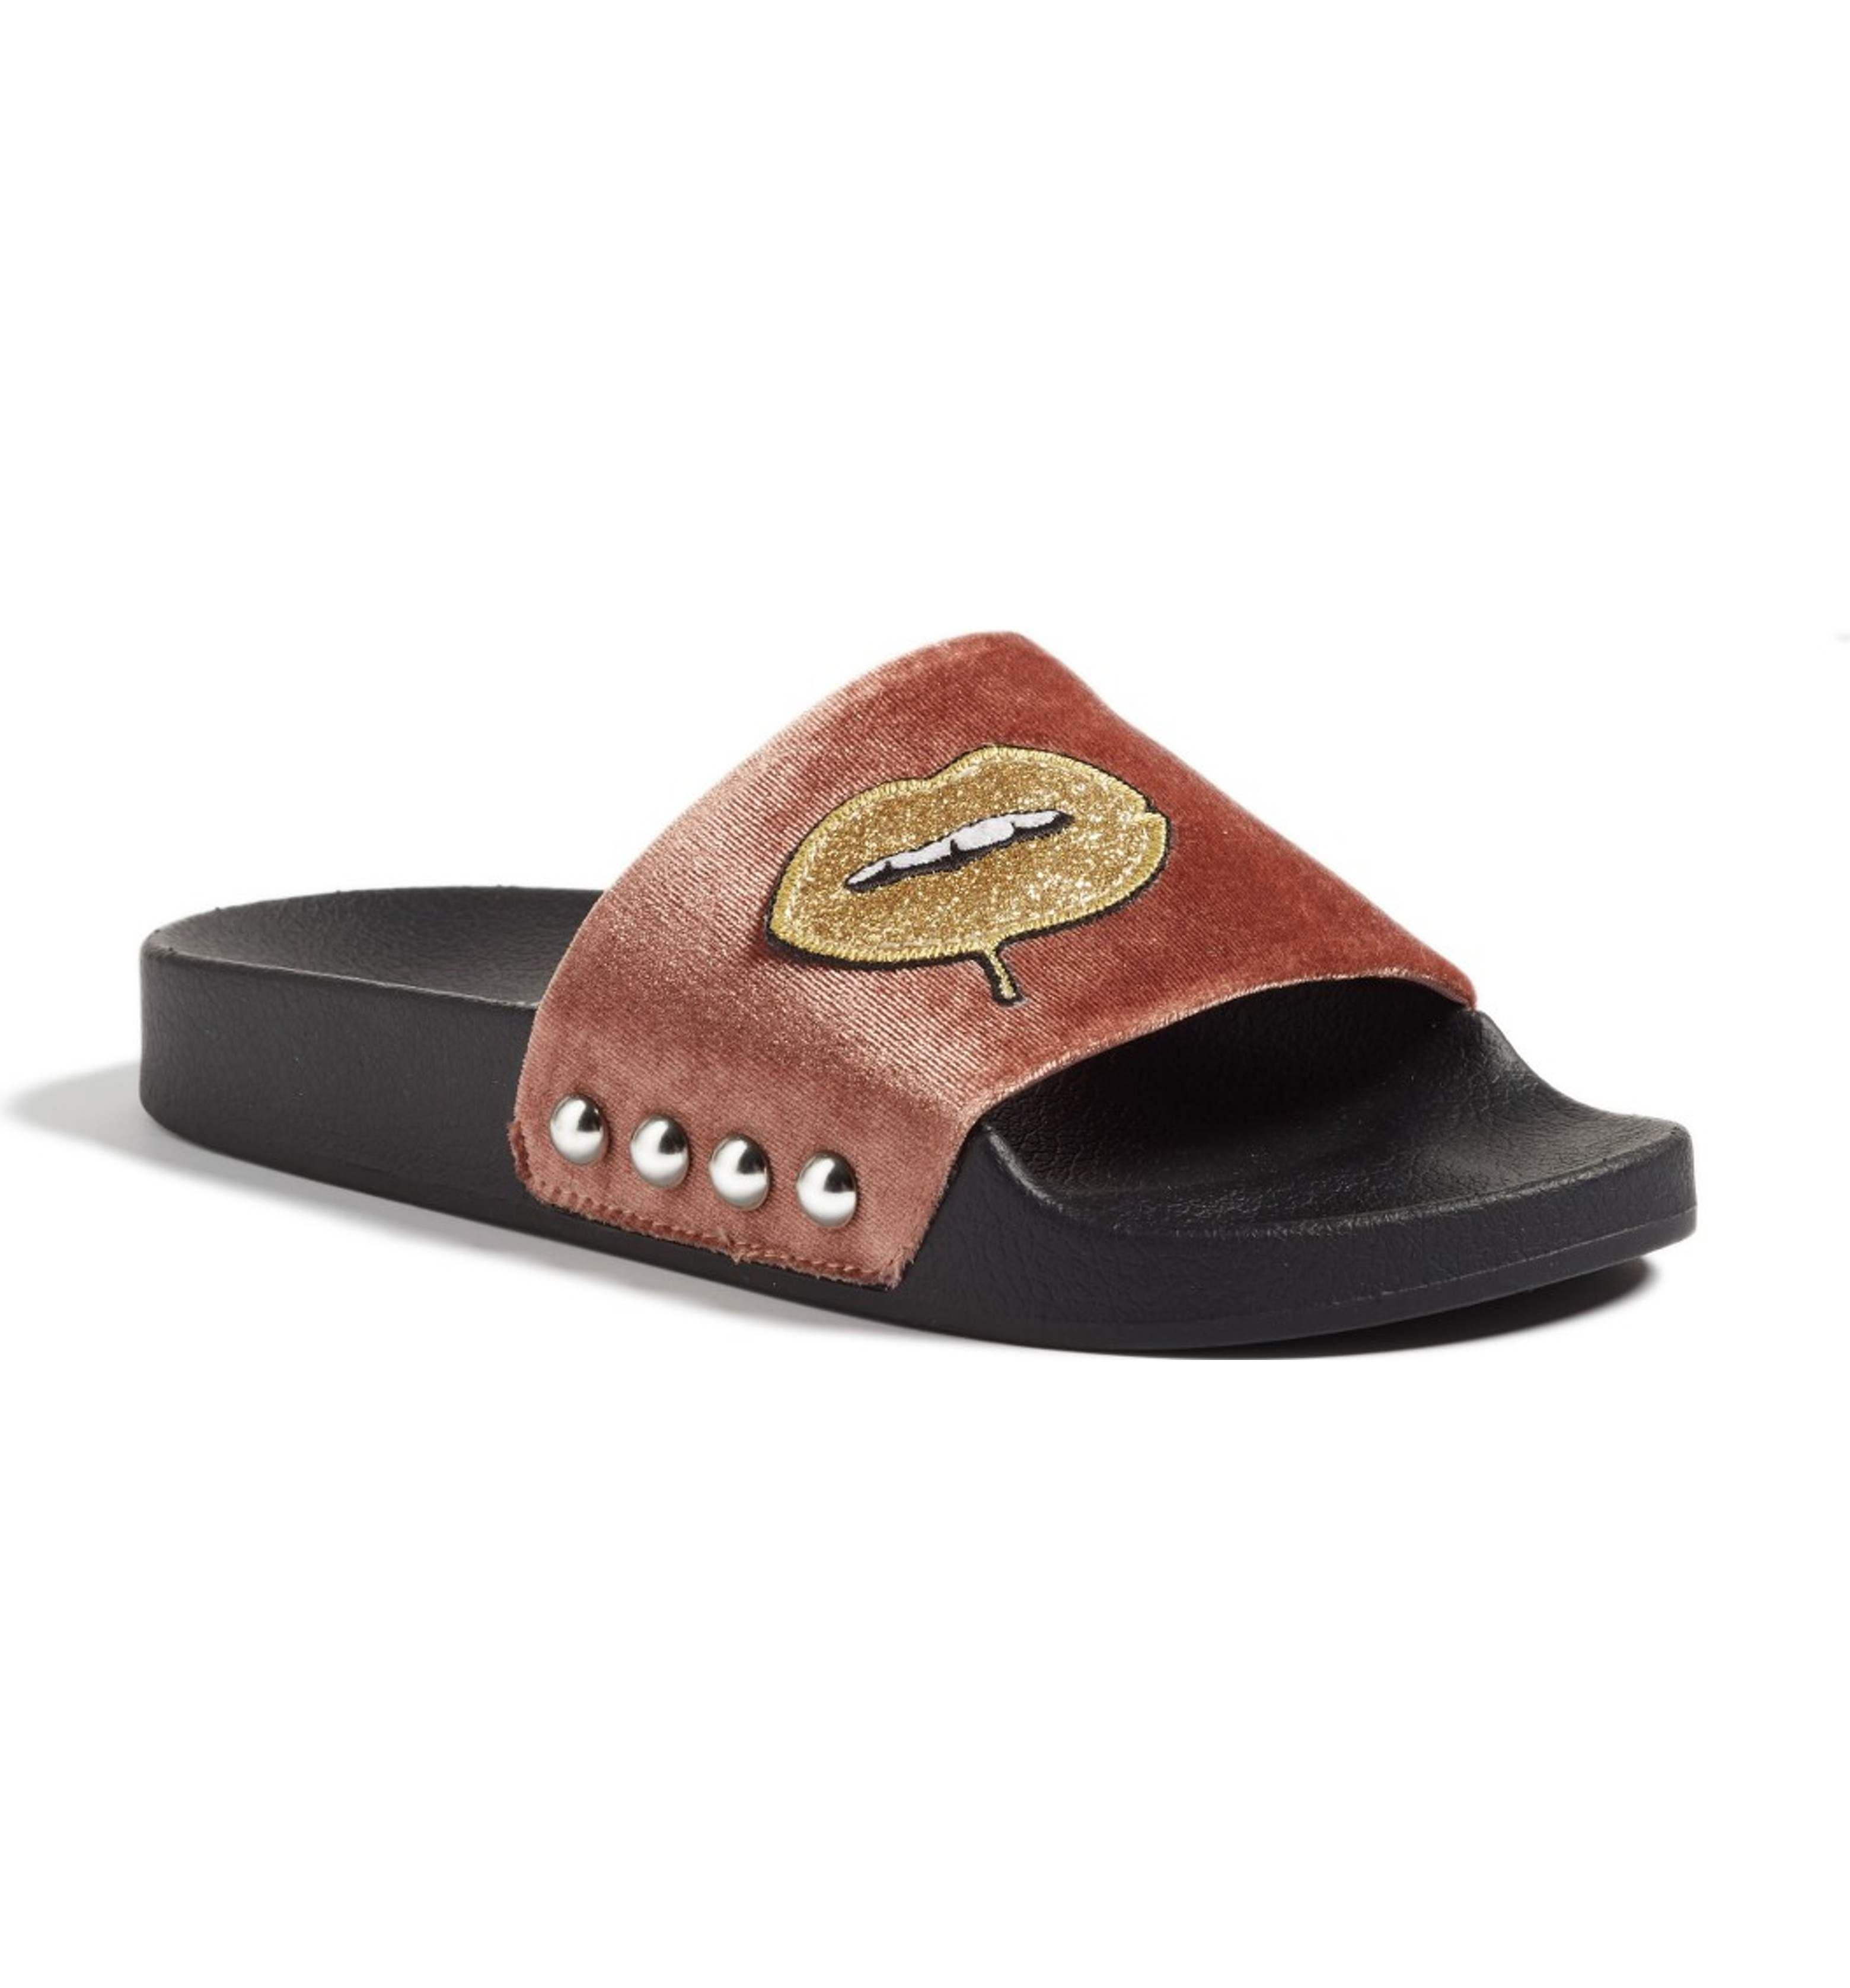 f3e76bbe426 Main Image - Steve Madden Patches Slide Sandal (Women) Have them and love  them!